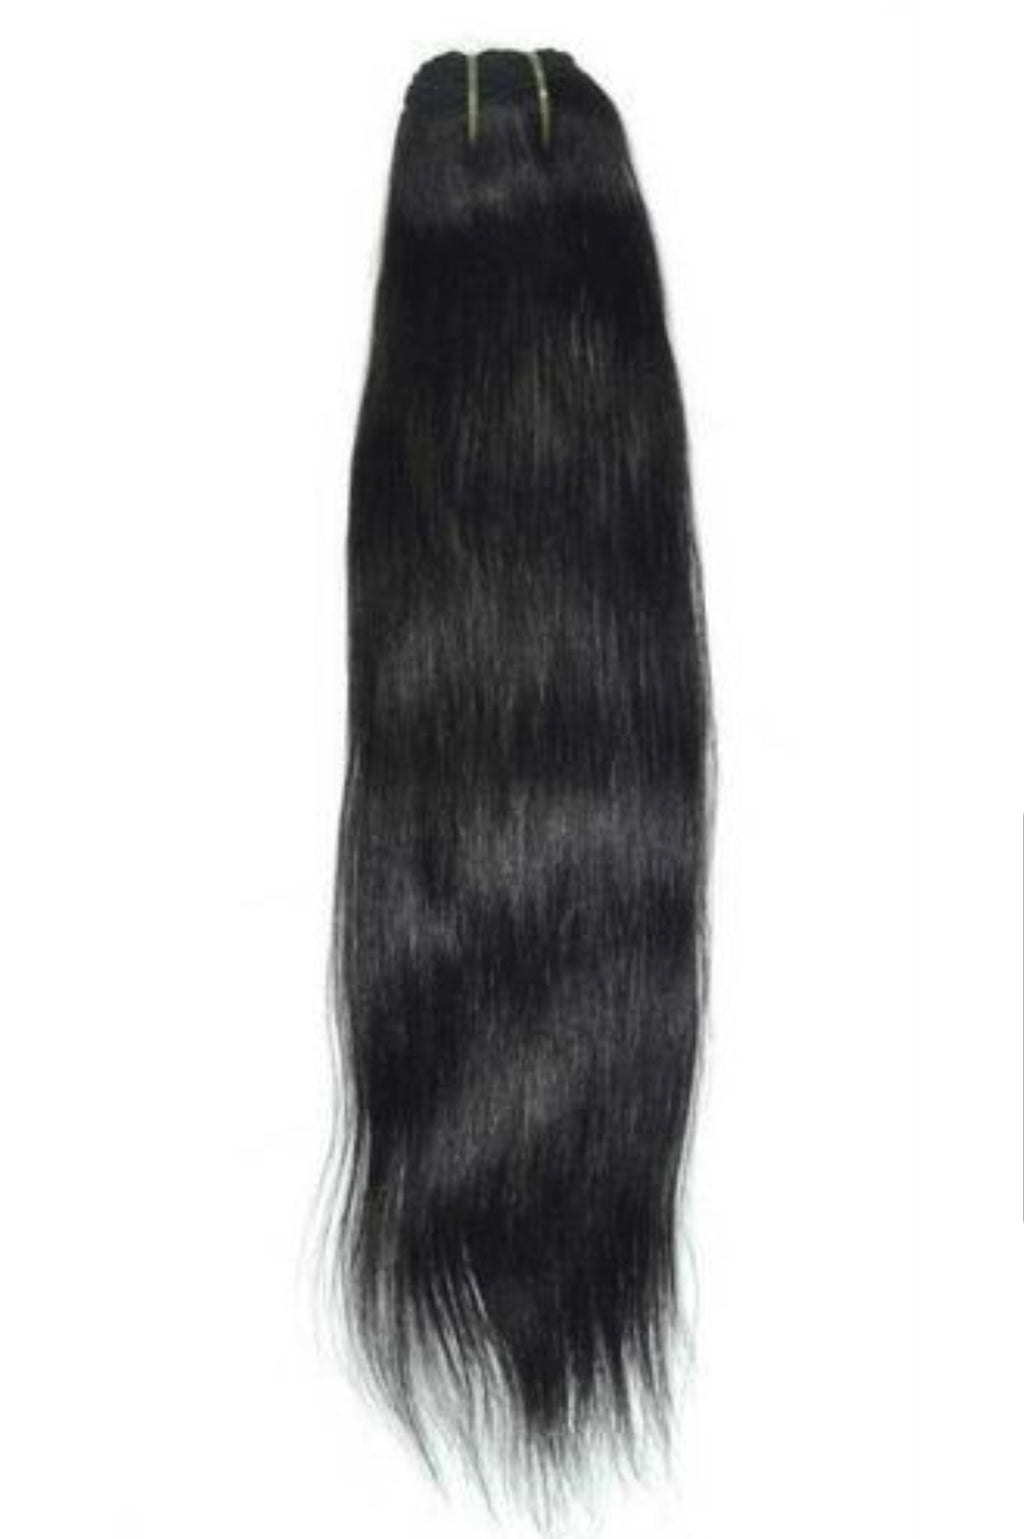 Premium virgin indian hair - straight - Halo SB Hair